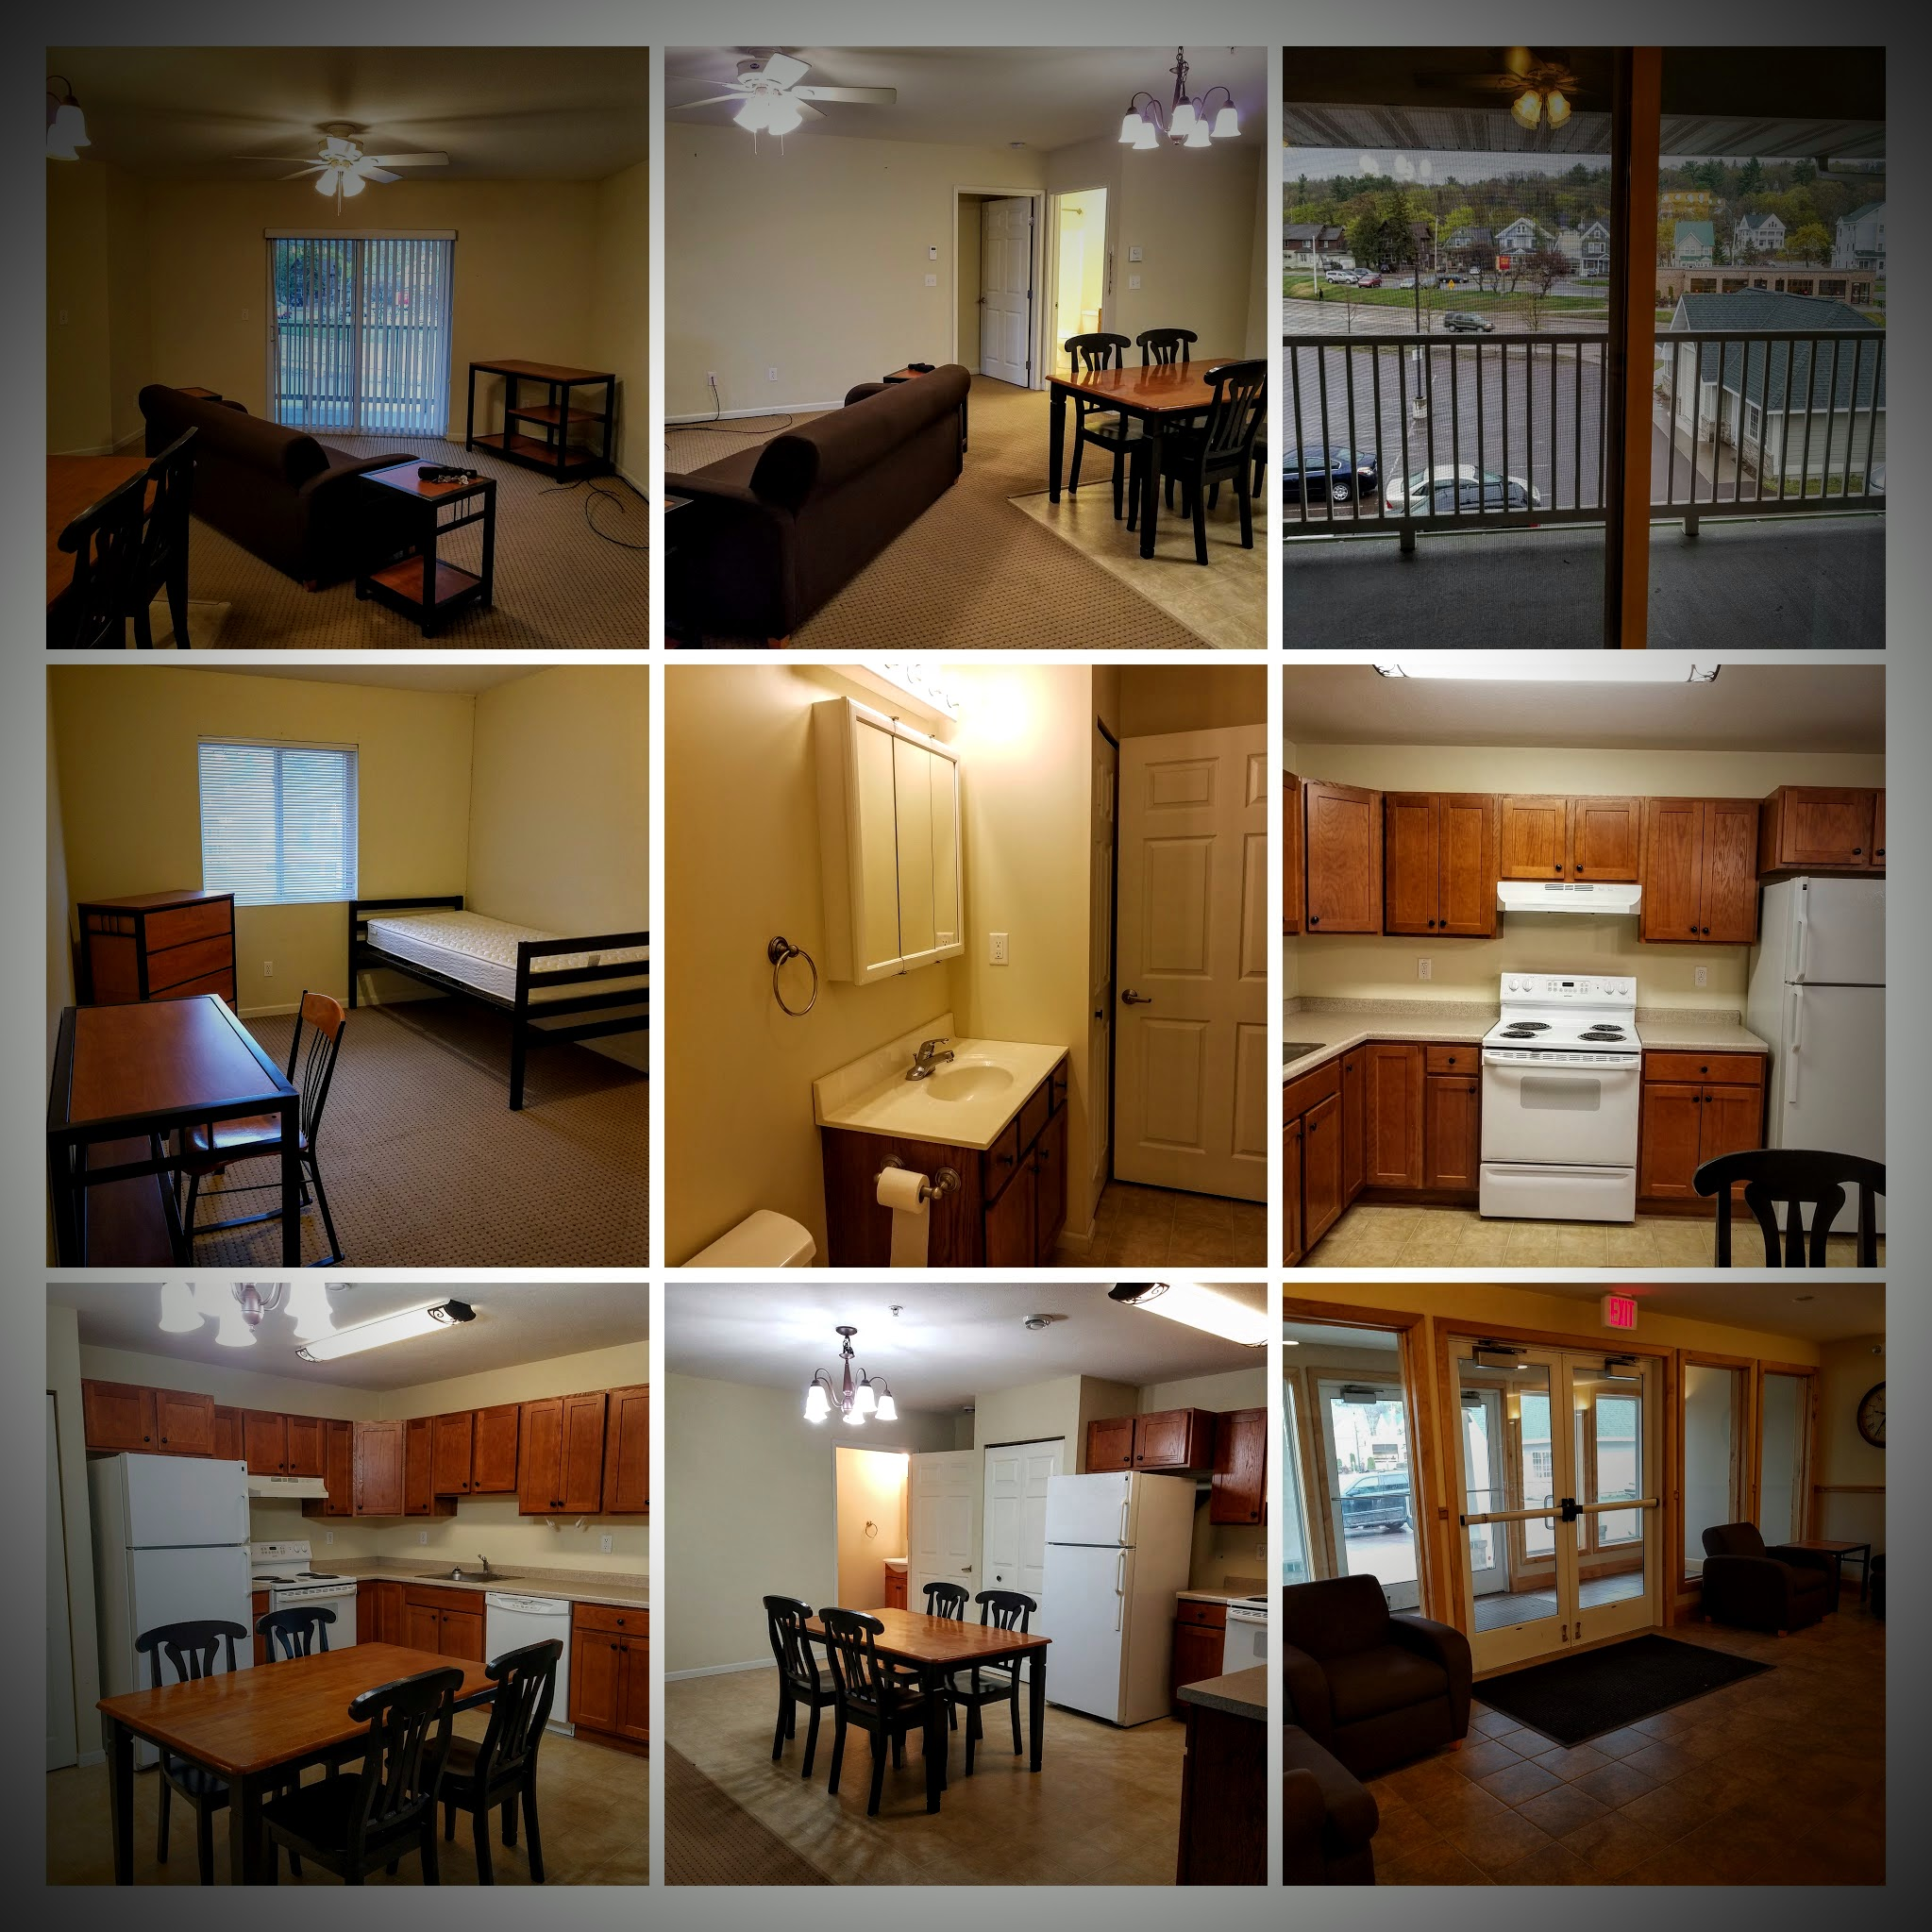 Furnished Apartment: FURNISHED APARTMENTS NEXT DOOR TO CAMPUS